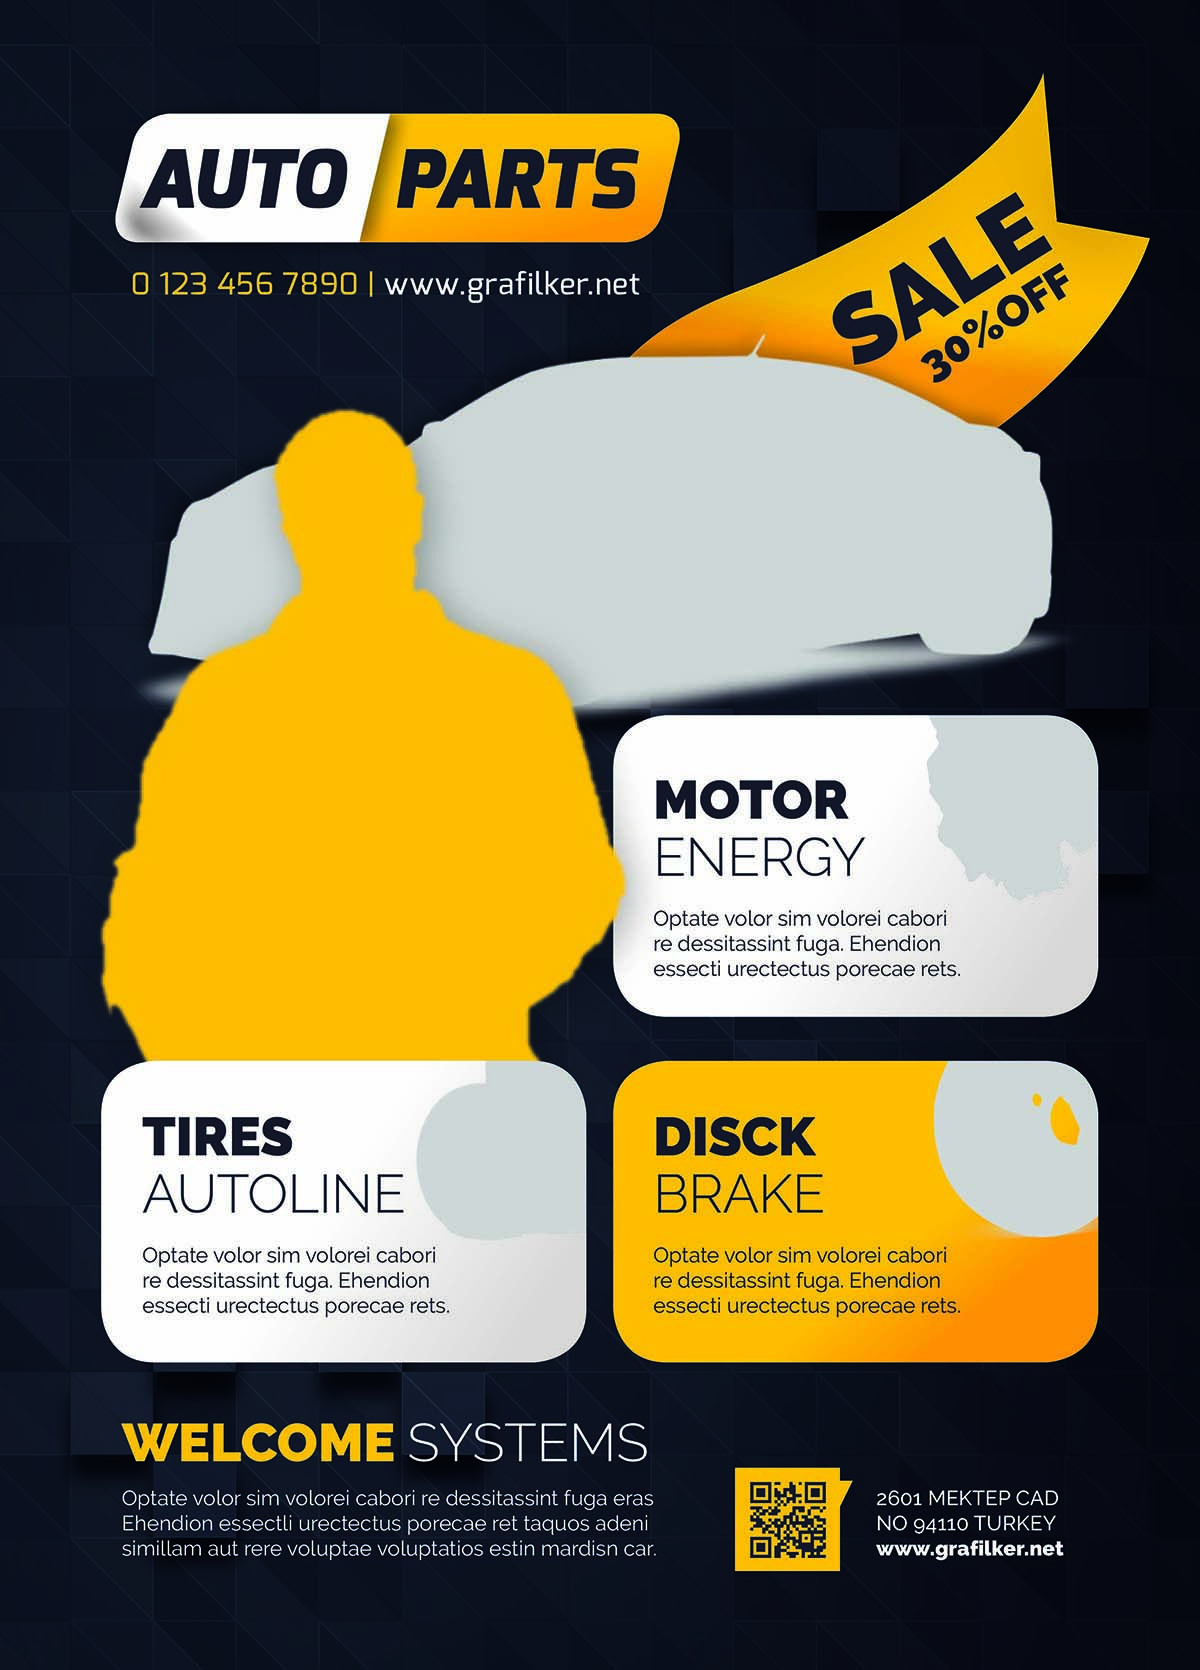 auto spare parts flyer design free vectors cards and illustrations